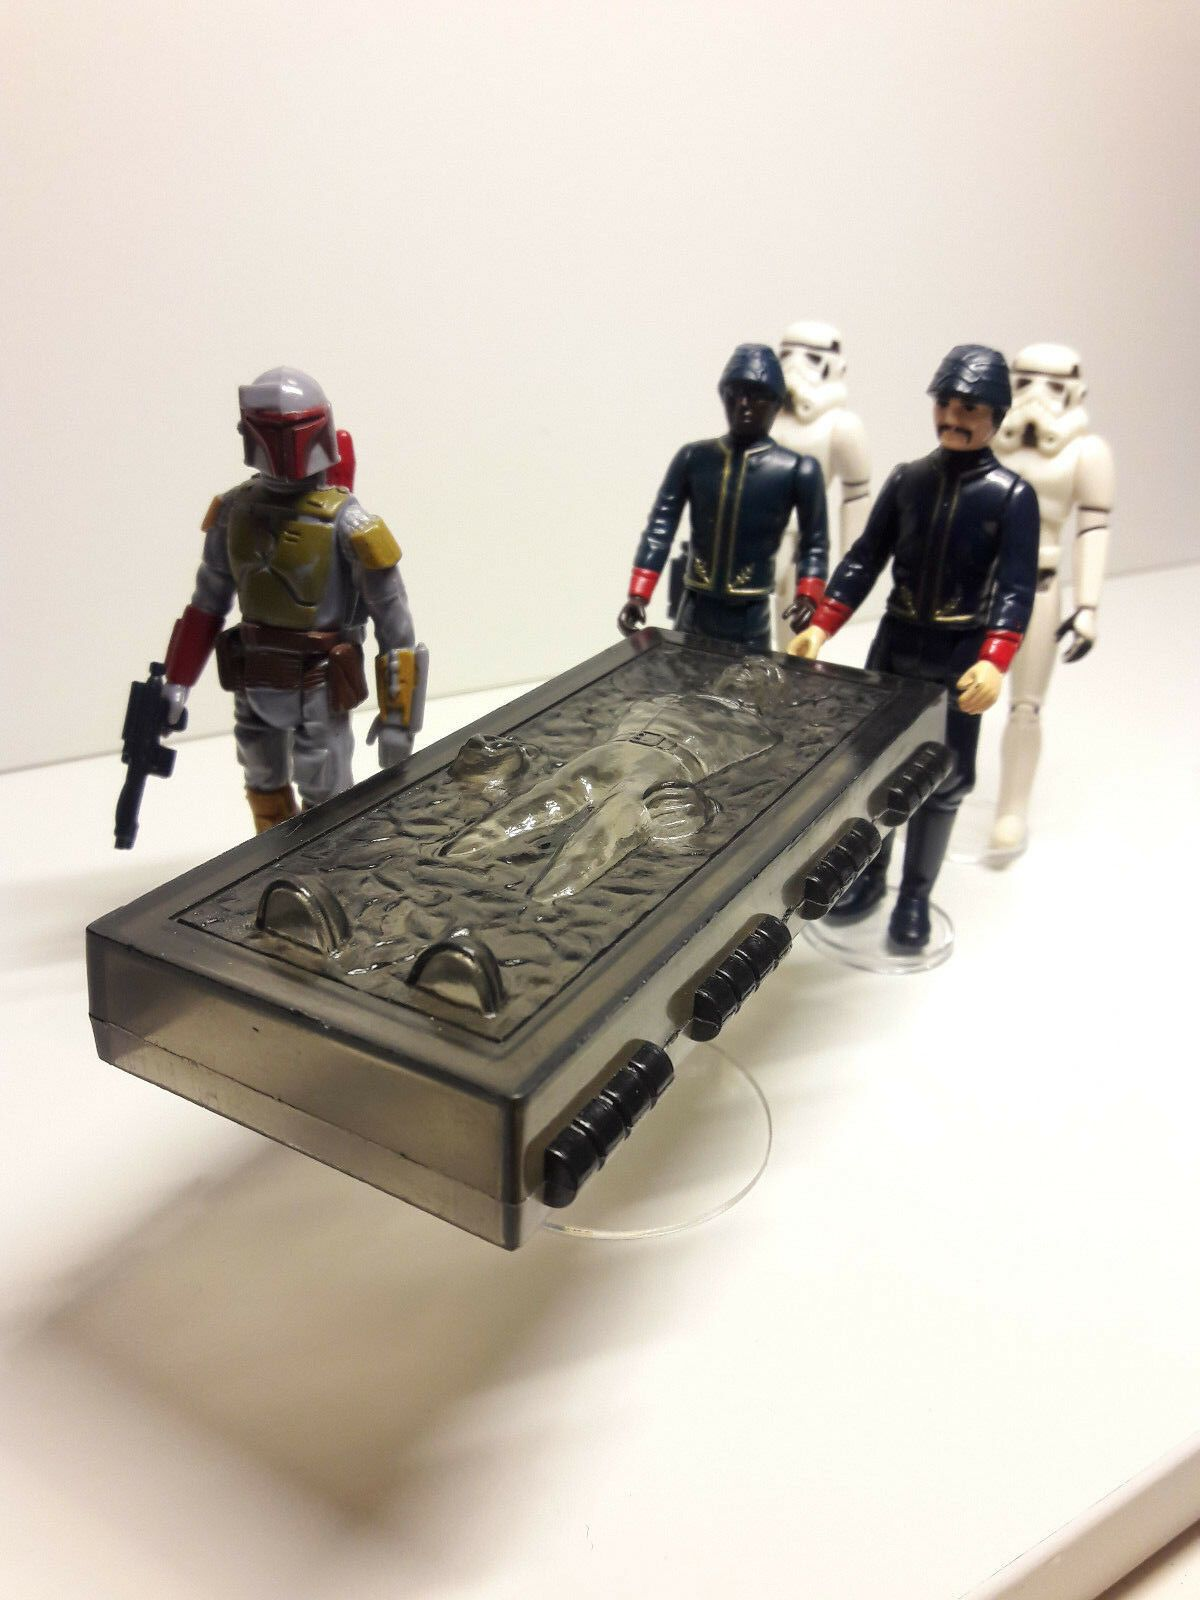 Horizontal Han Carbonite Display Stand Stand Only Star Wars Kenner Potf Ebay Star Wars Toys Action Figures Vintage Star Wars Toys Star Wars Toys